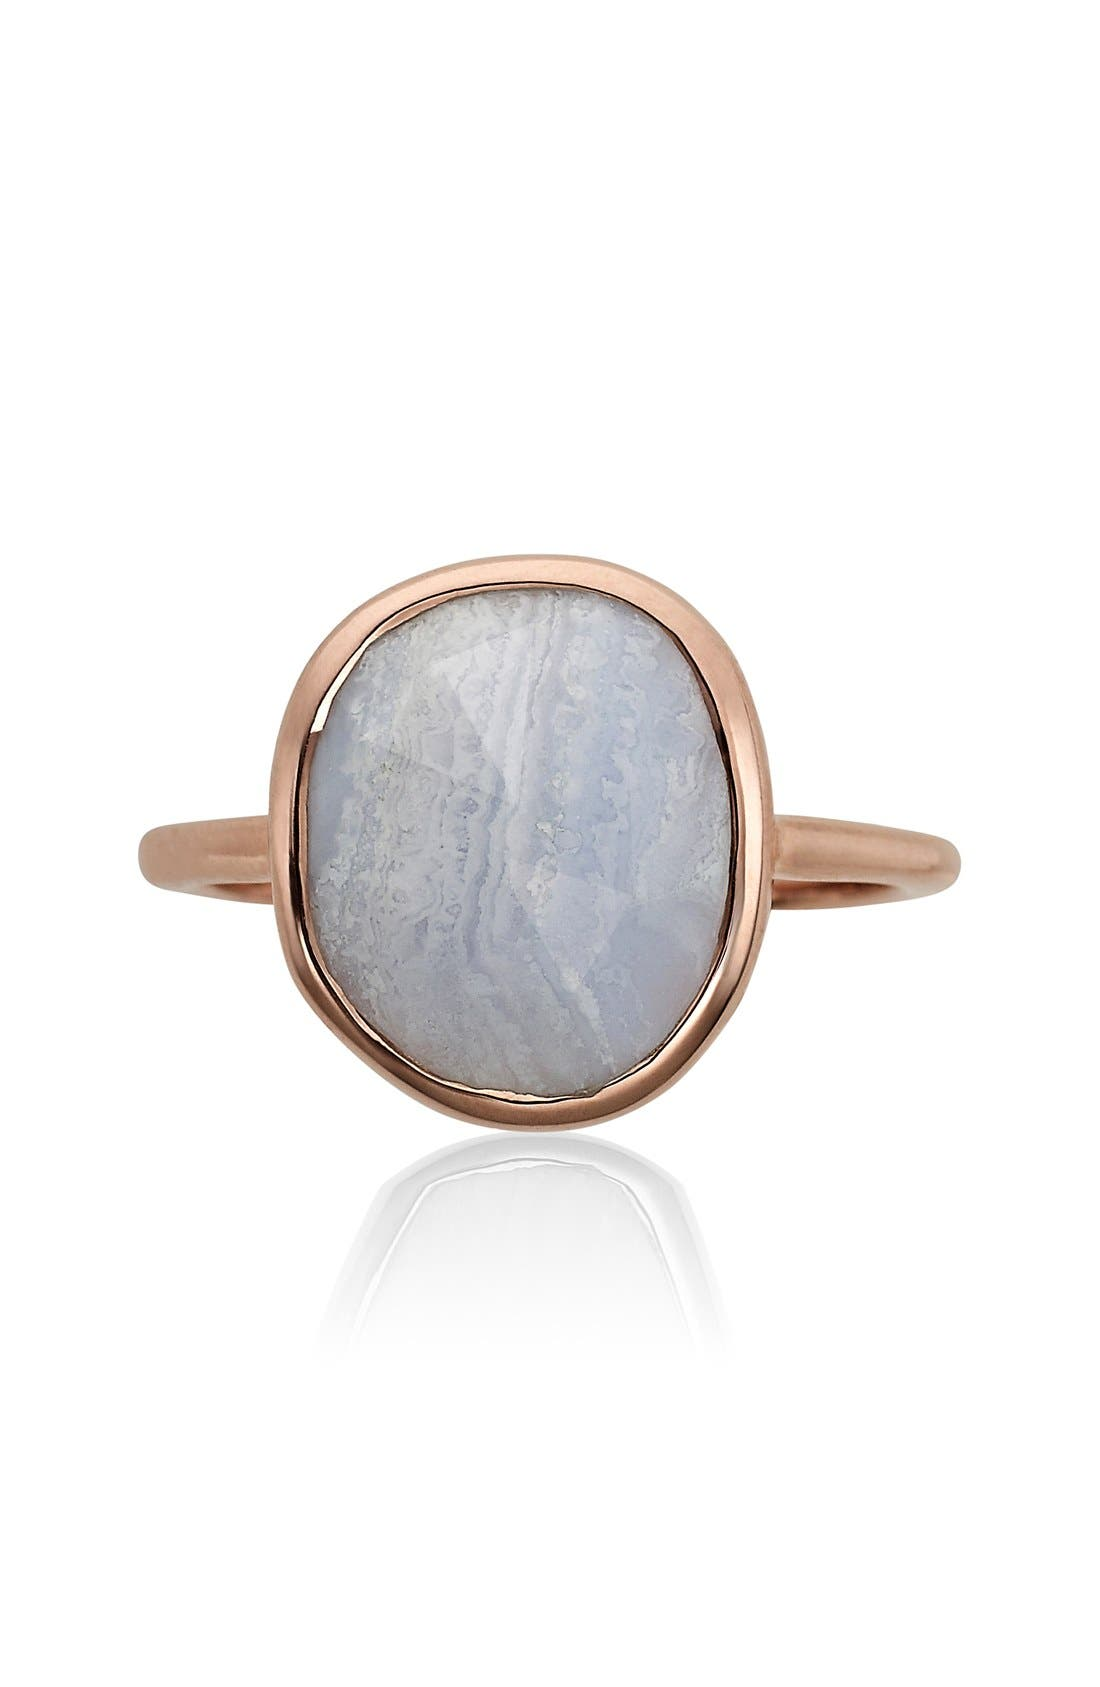 MONICA VINADER, Siren Medium Semiprecious Stone Stacking Ring, Alternate thumbnail 6, color, ROSE GOLD/ BLUE LACE AGATE